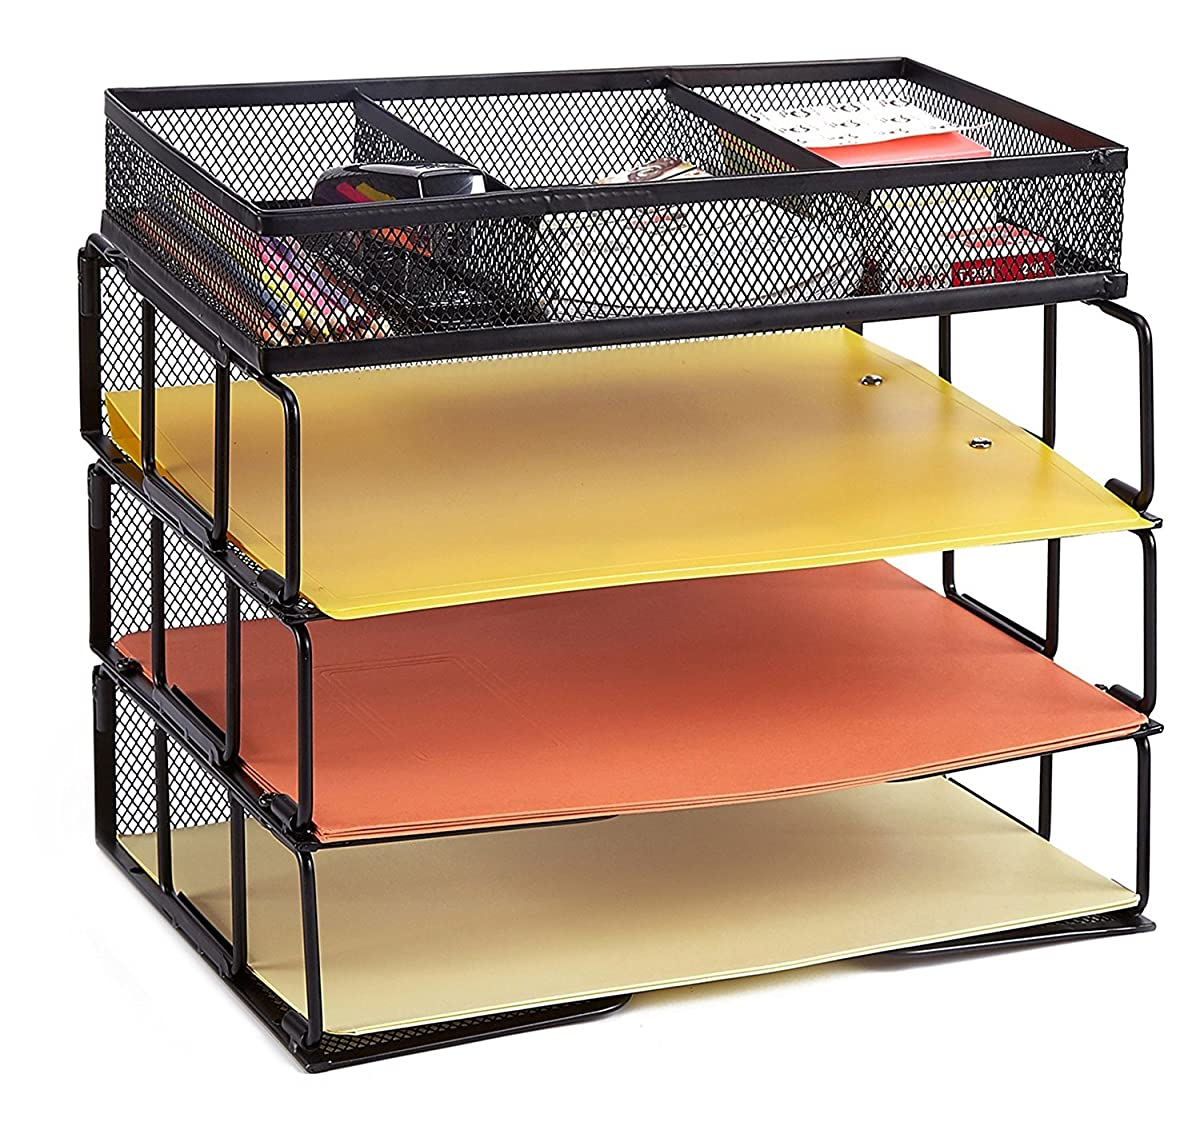 Rackarster Mesh Desktop Office Organizer 3-Tier Stackable Desk Paper Organizer Letter Tray with File Organizer Sorter 3 Compartment, Black